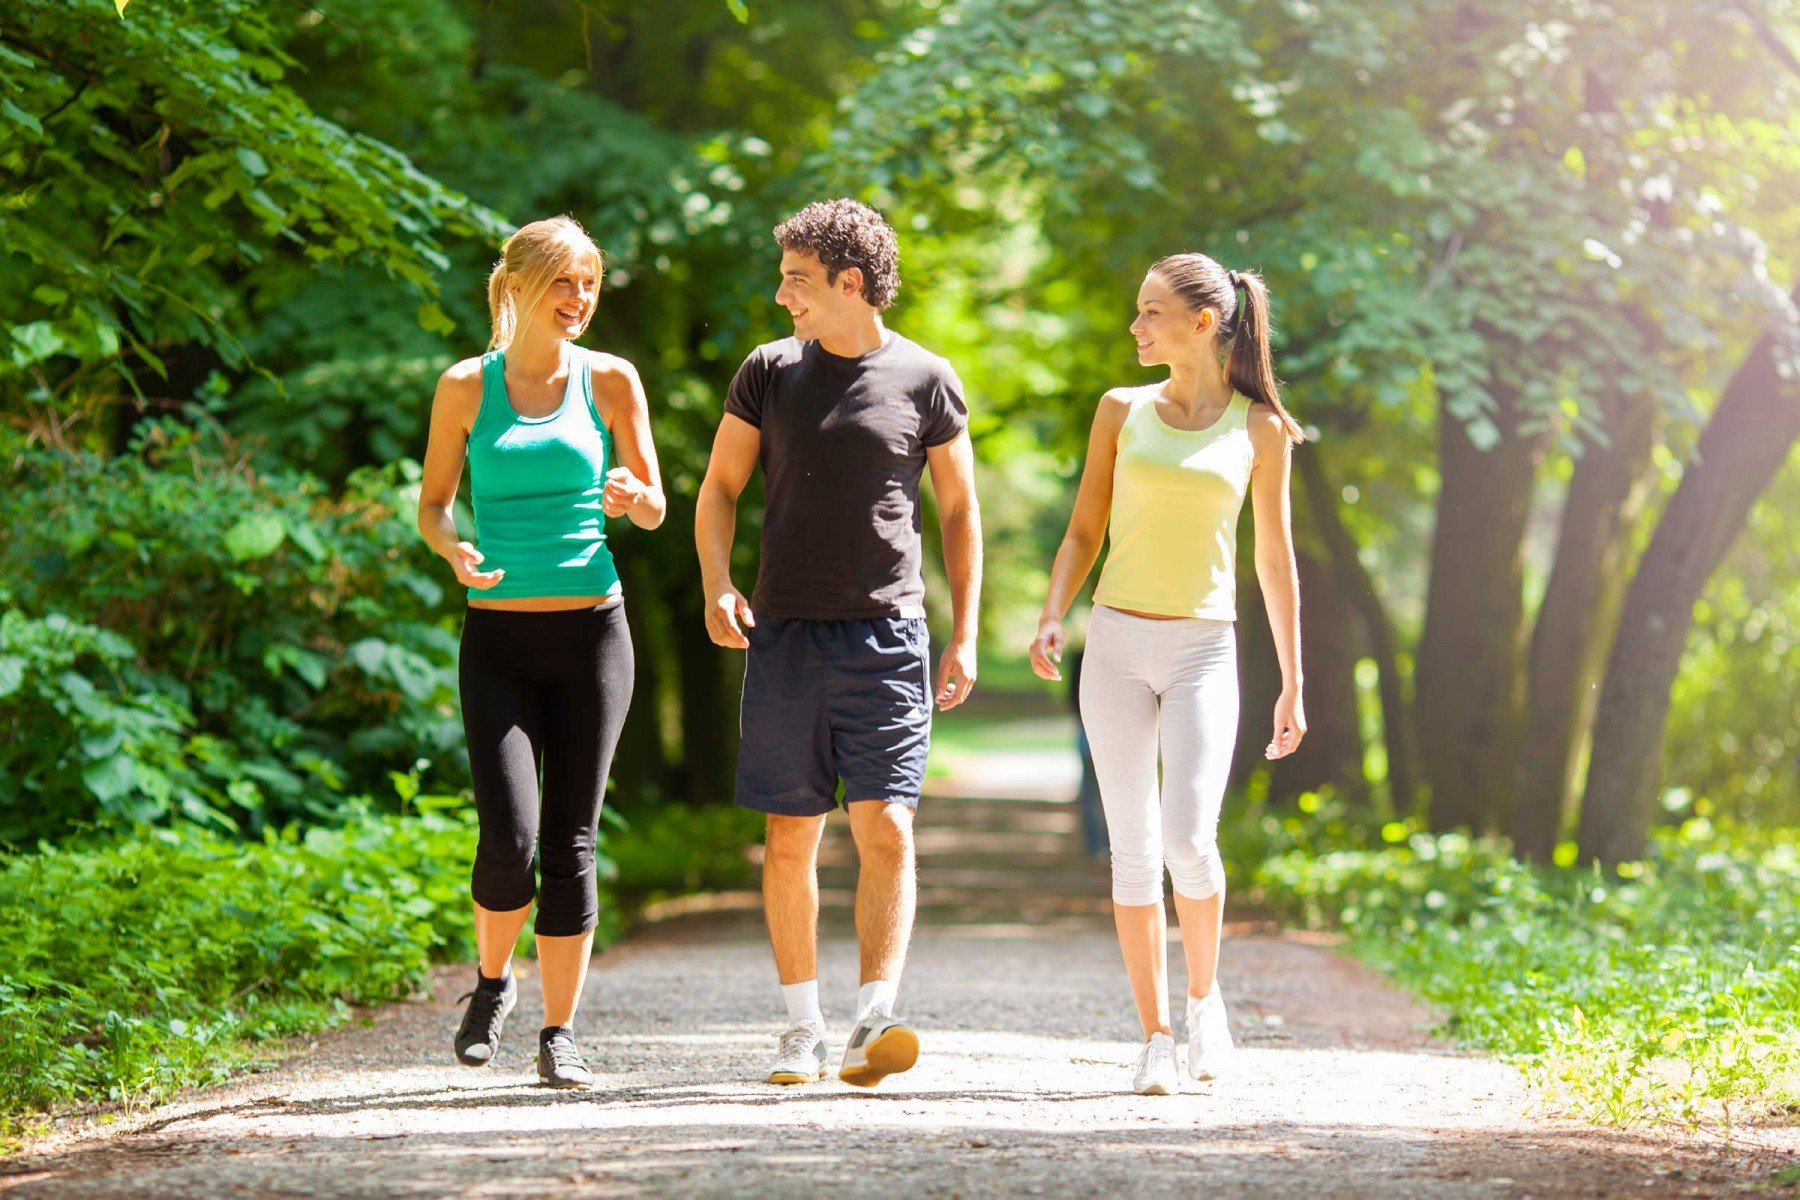 01-walking-for-exercise-stroll-with-friends1